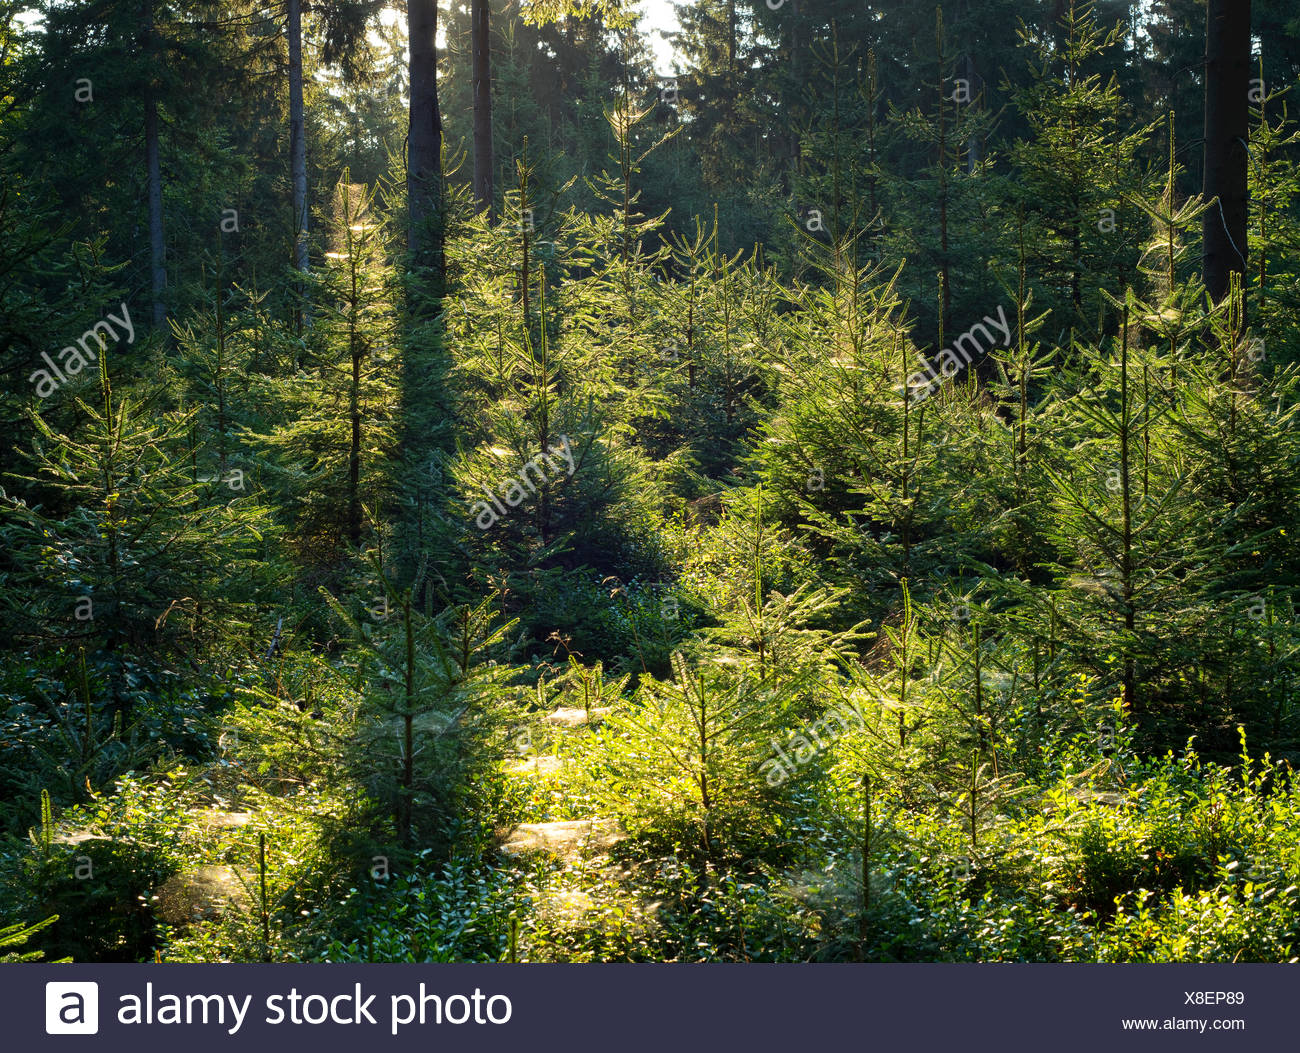 Spruce forest, Norway spruce (Picea abies), backlit, Thuringian Forest, Thuringia, Germany Stock Photo